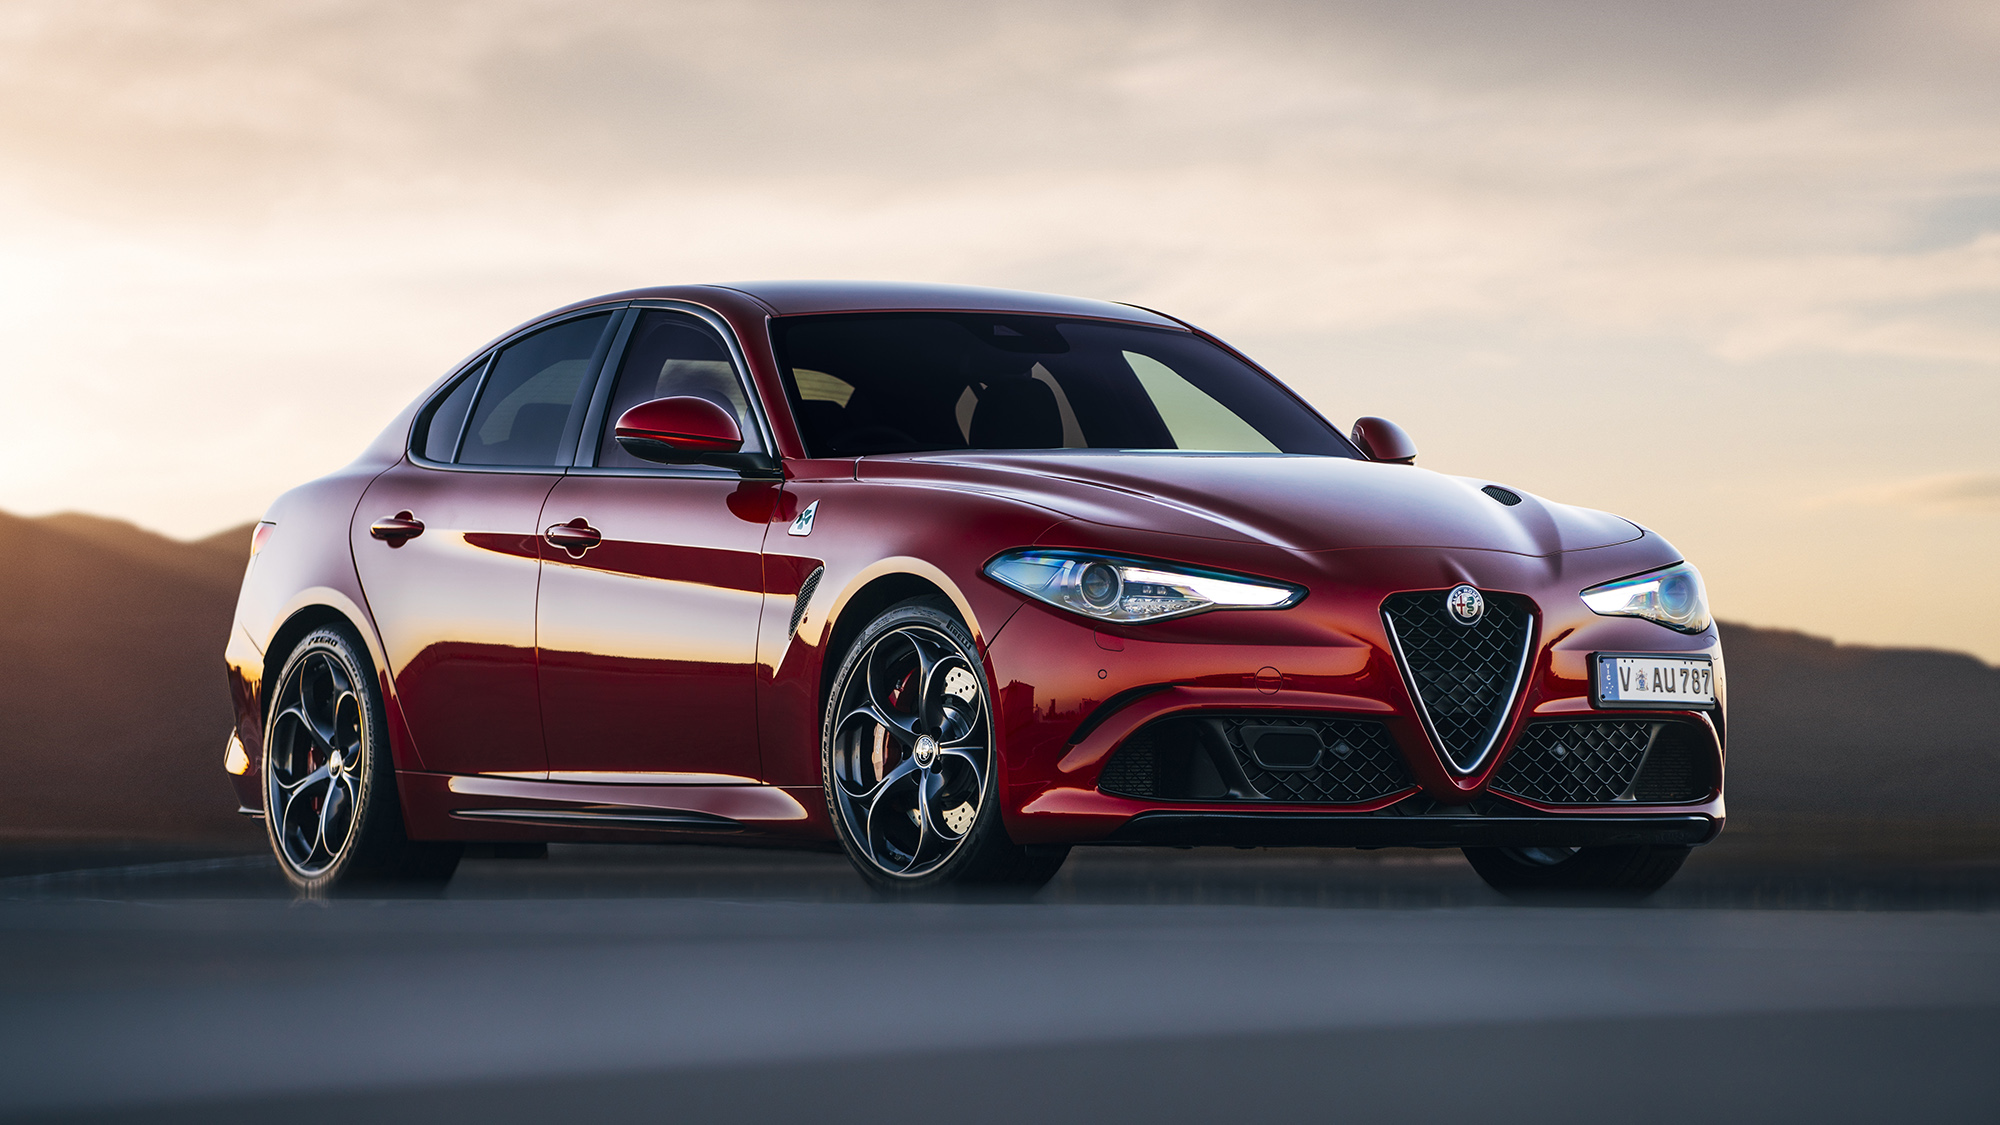 2019 Alfa Romeo Giulia Pricing And Specs Caradvice